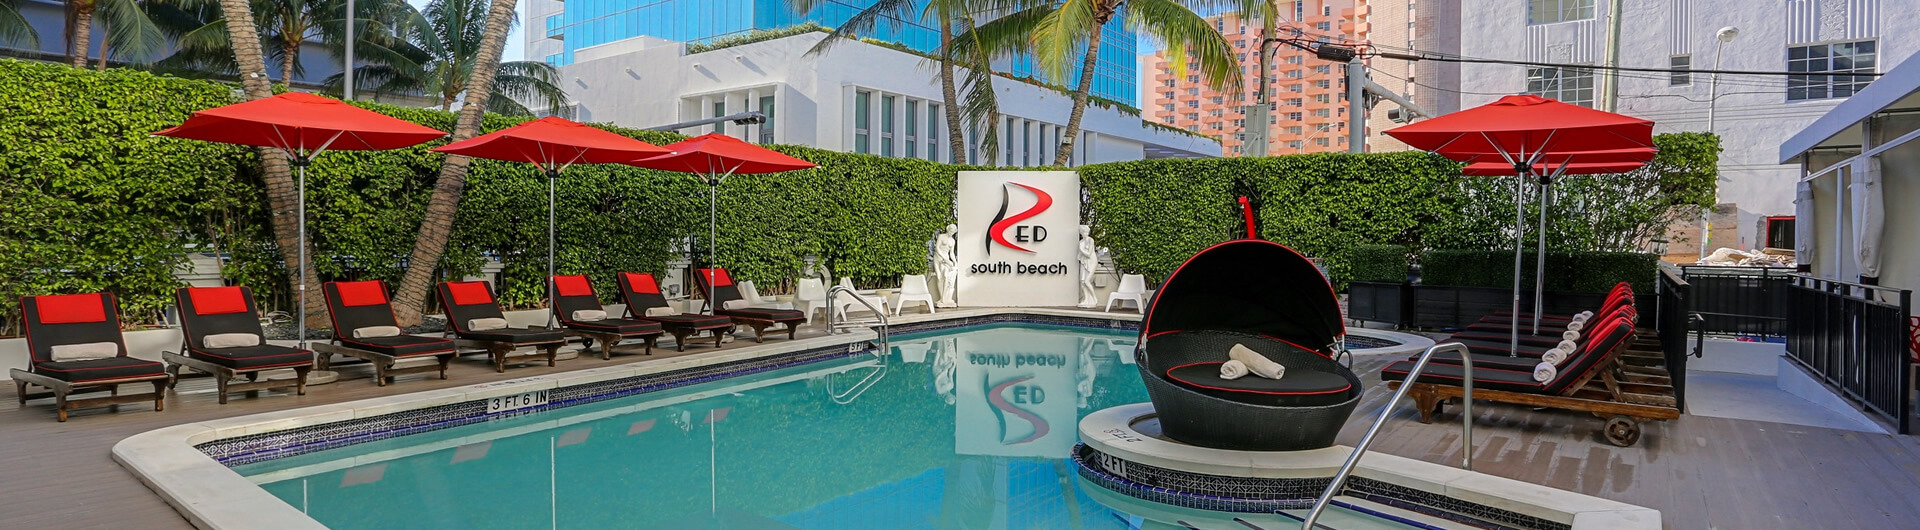 The Best Pool Parties In South Beach Miami Red South Beach Hotel